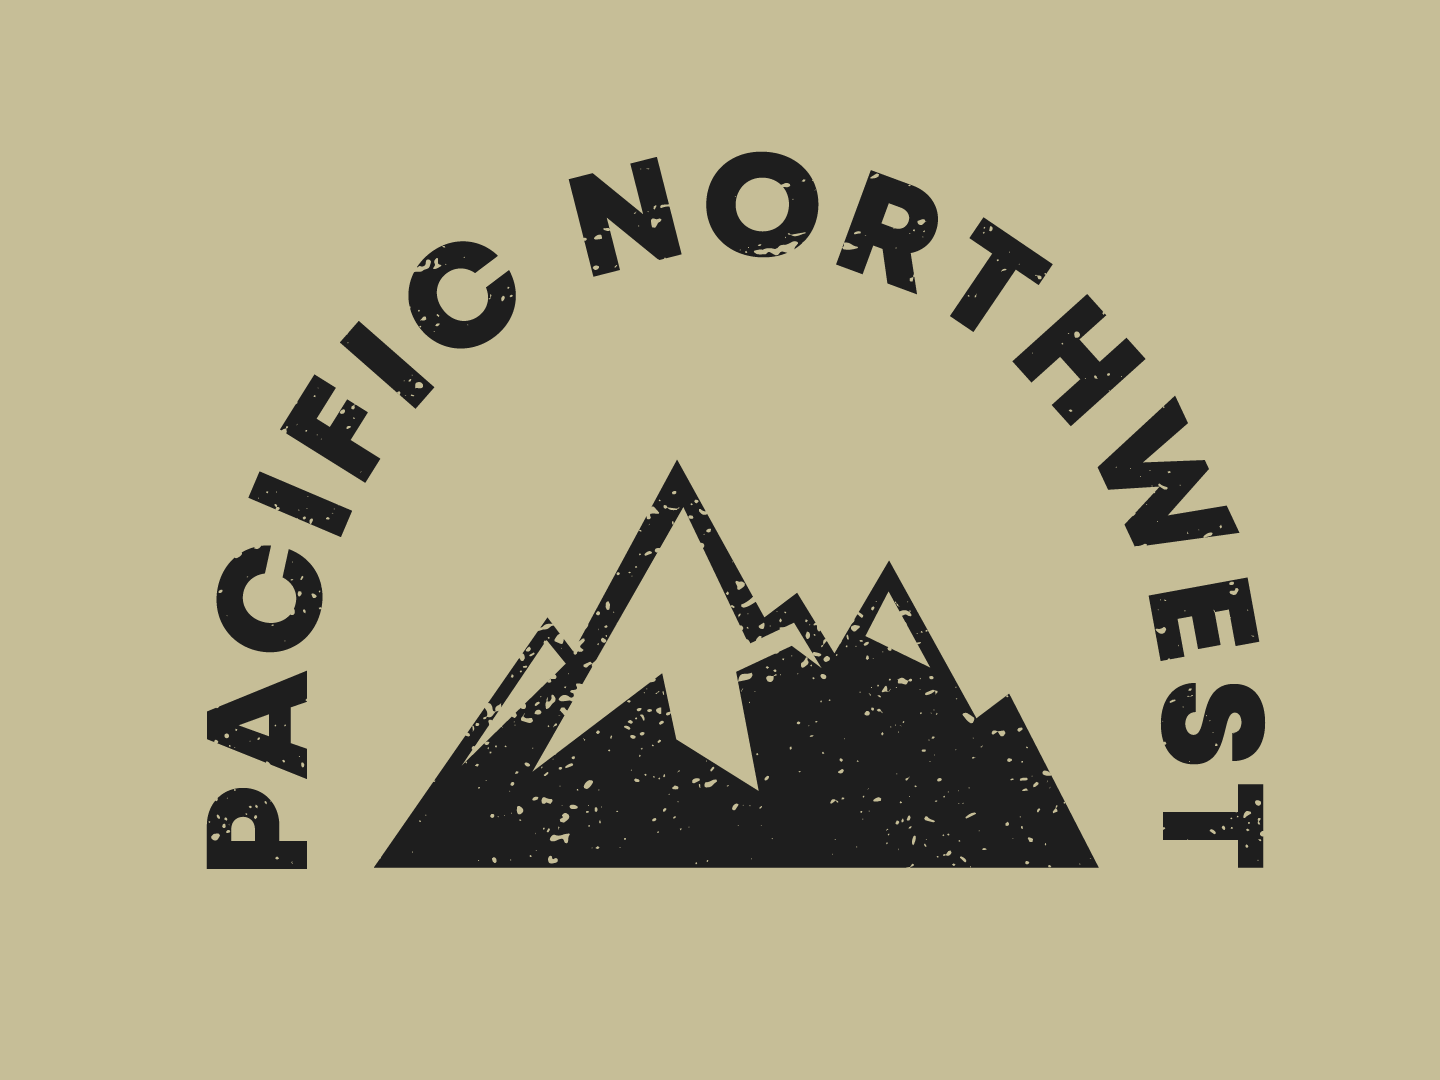 Pacific Northwest Mountain logo by Yannis Choglo on Dribbble.